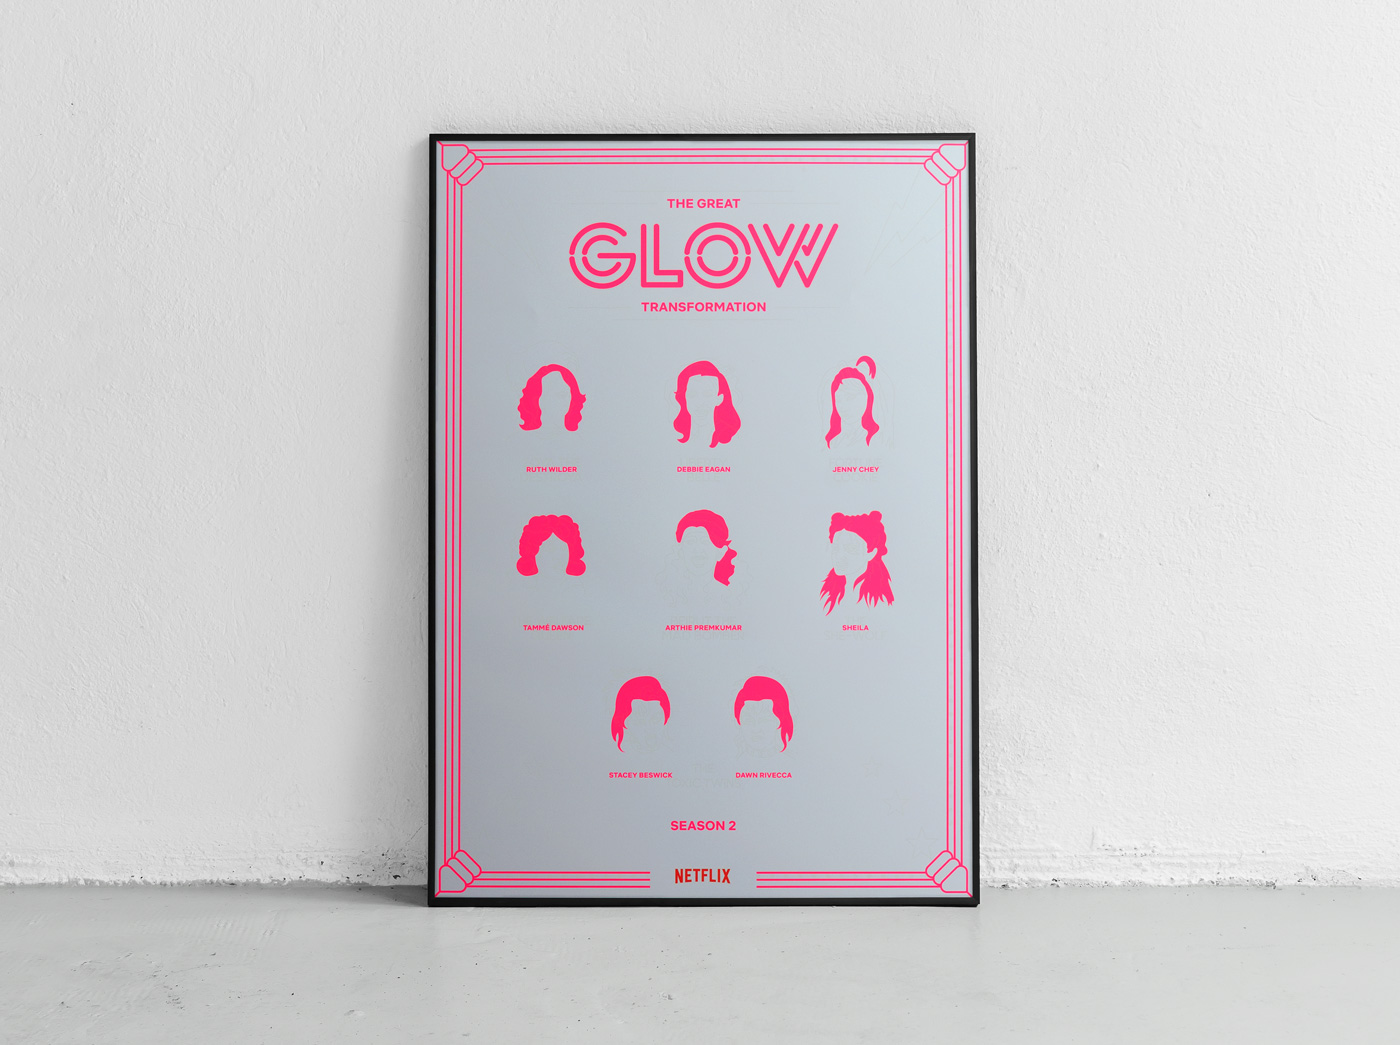 Netflix GLOW - poster design by upstruct